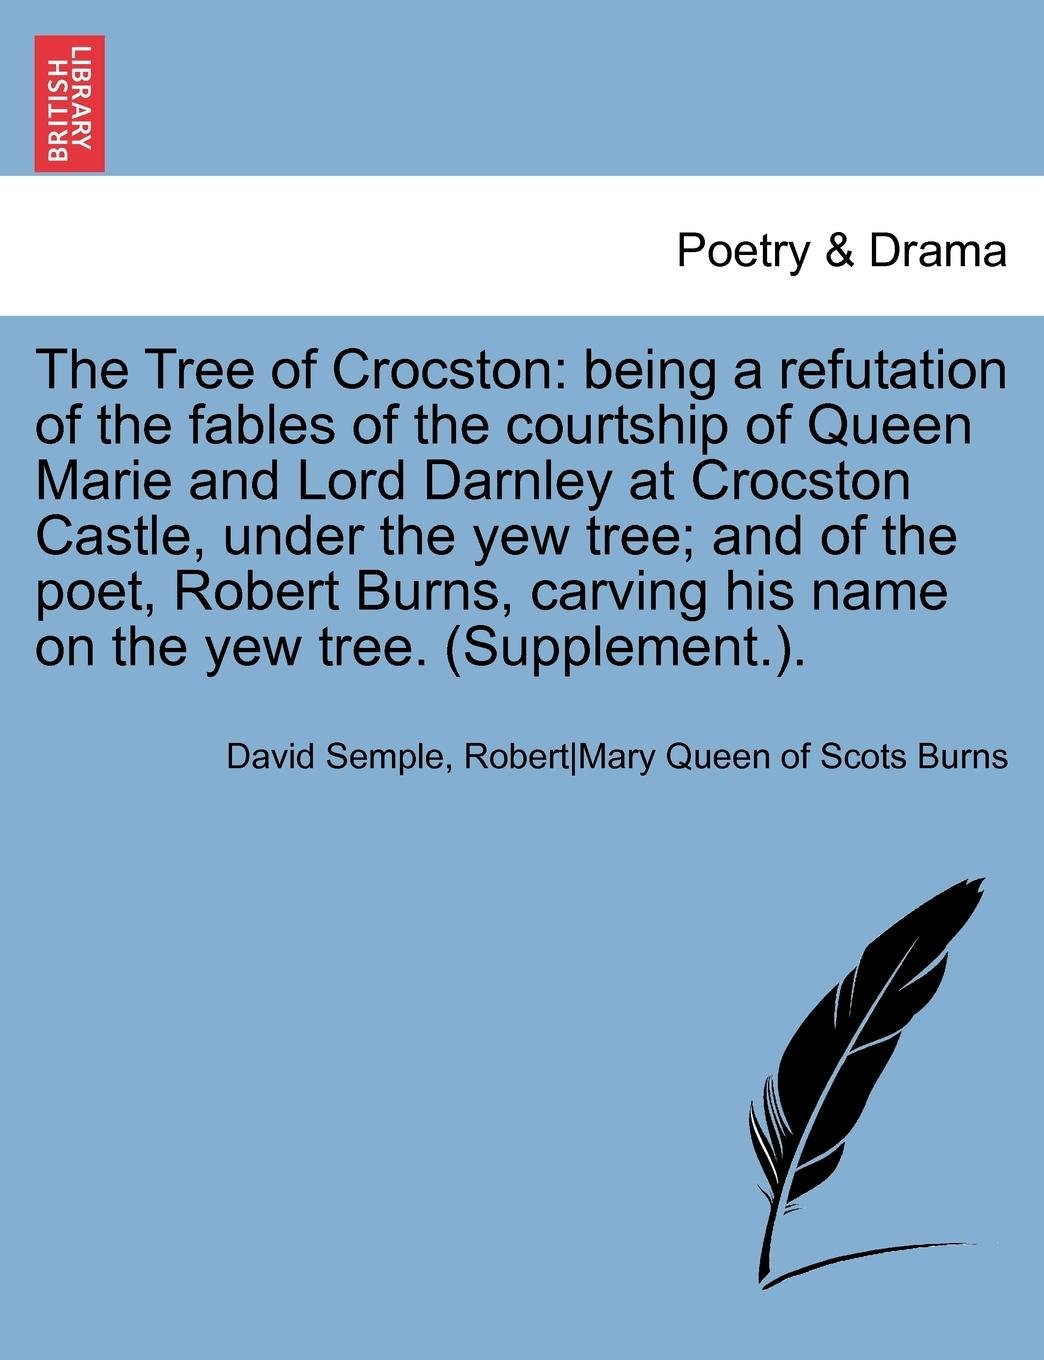 Download The Tree of Crocston: being a refutation of the fables of the courtship of Queen Marie and Lord Darnley at Crocston Castle, under the yew tree; and of ... his name on the yew tree. (Supplement.). pdf